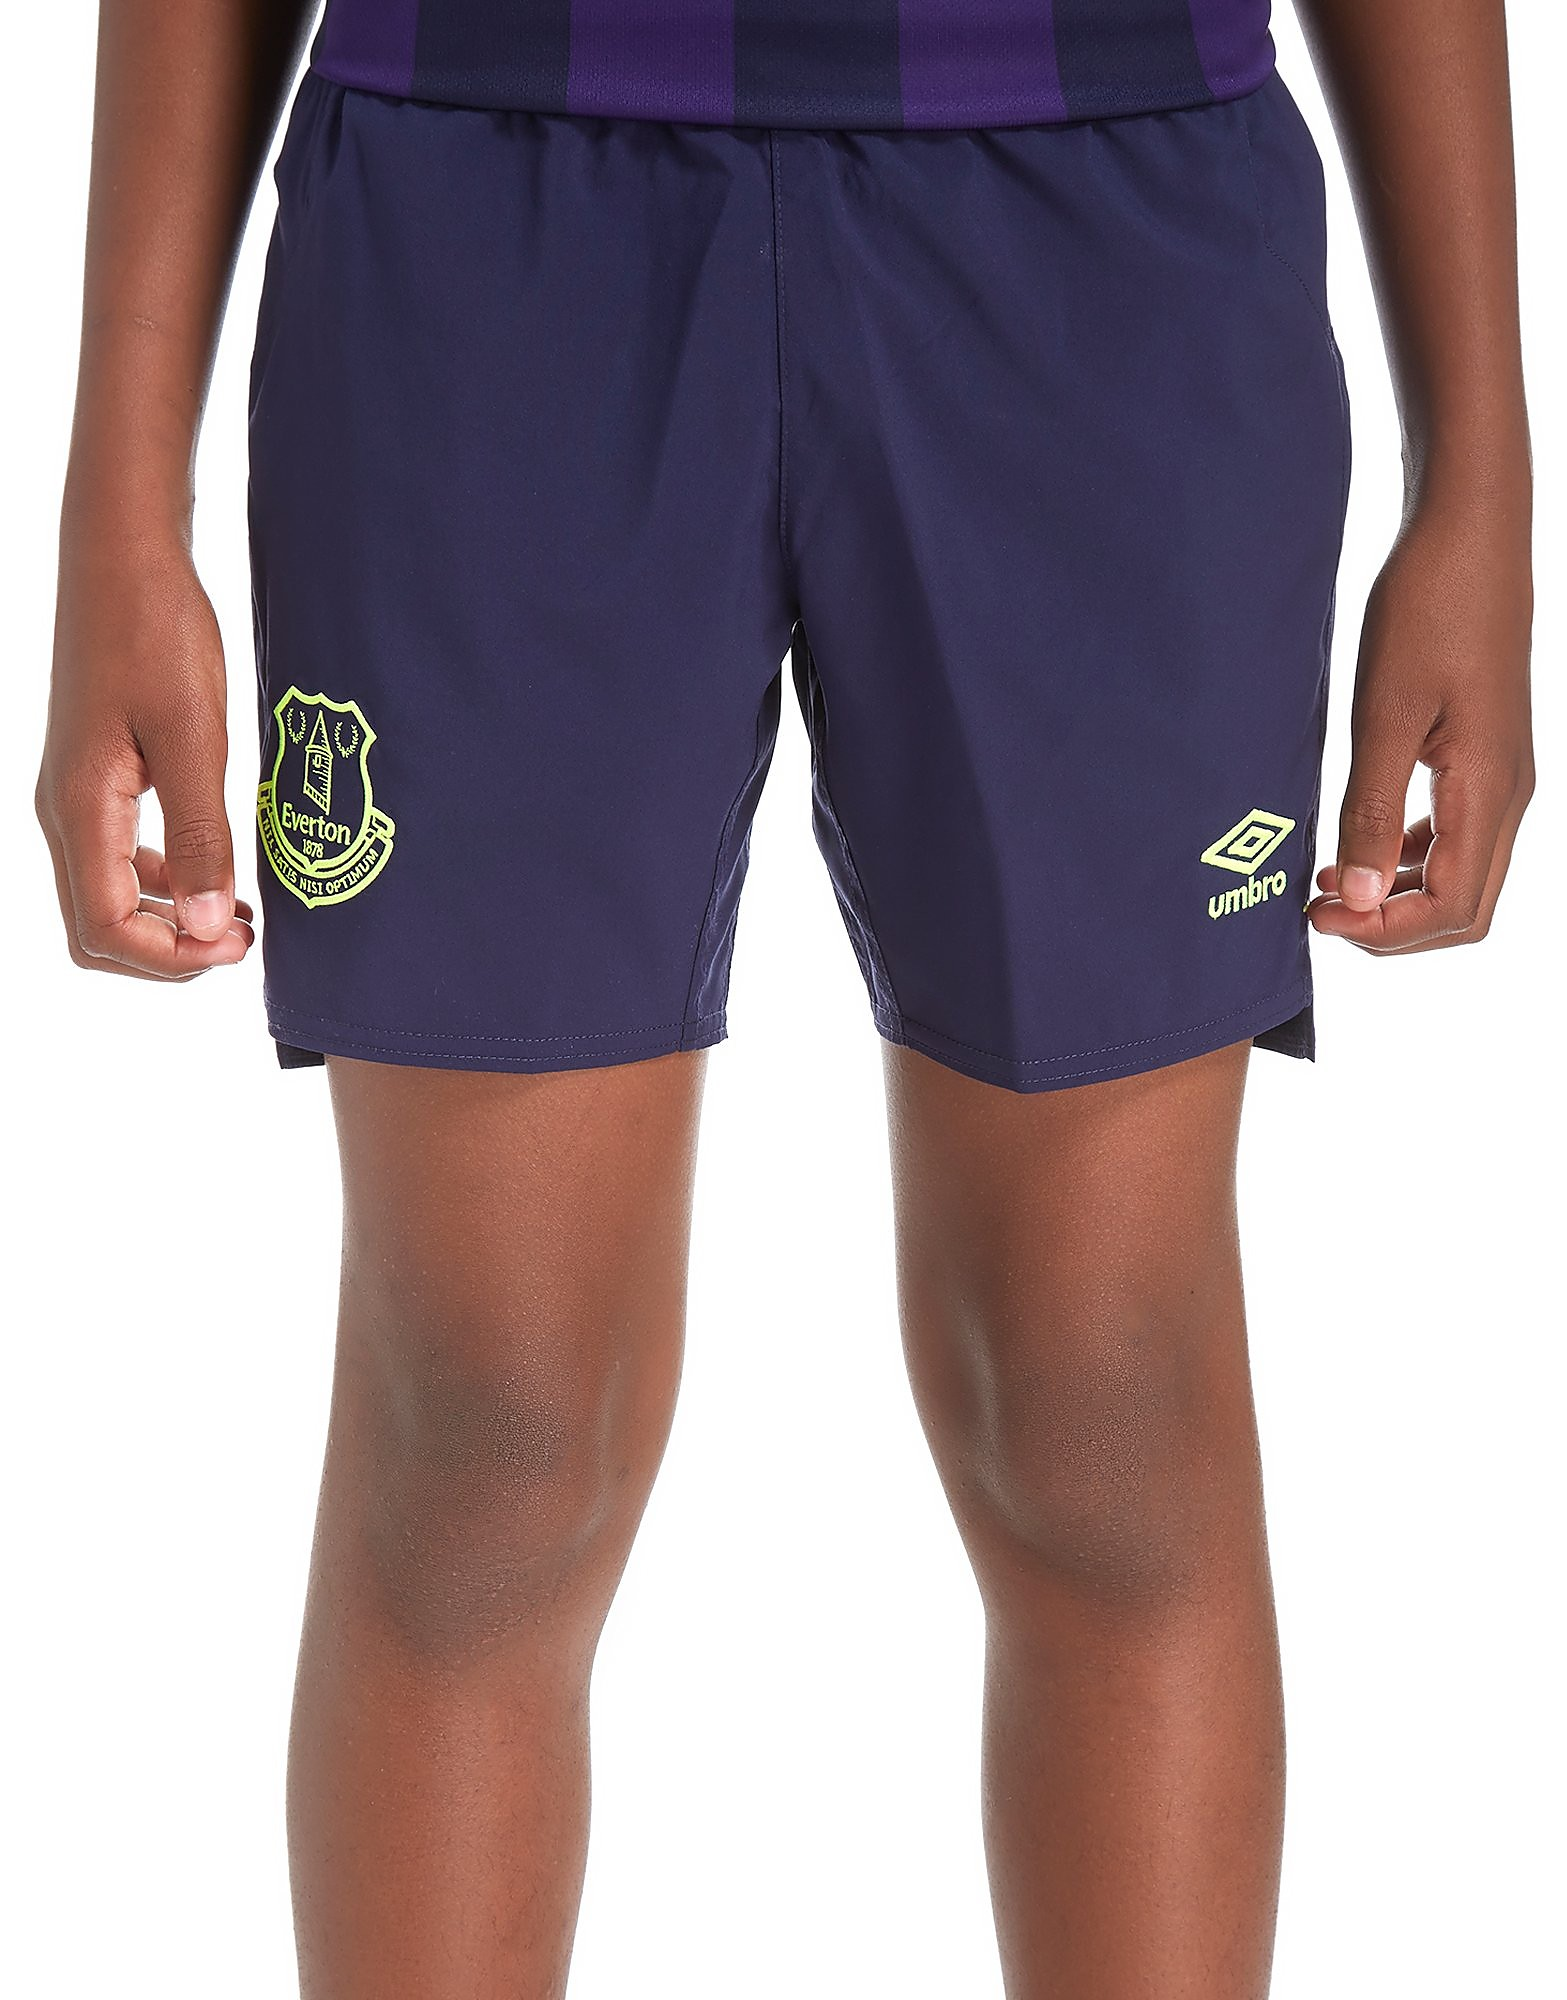 Umbro Everton FC 2017/18 Third Shorts Junior